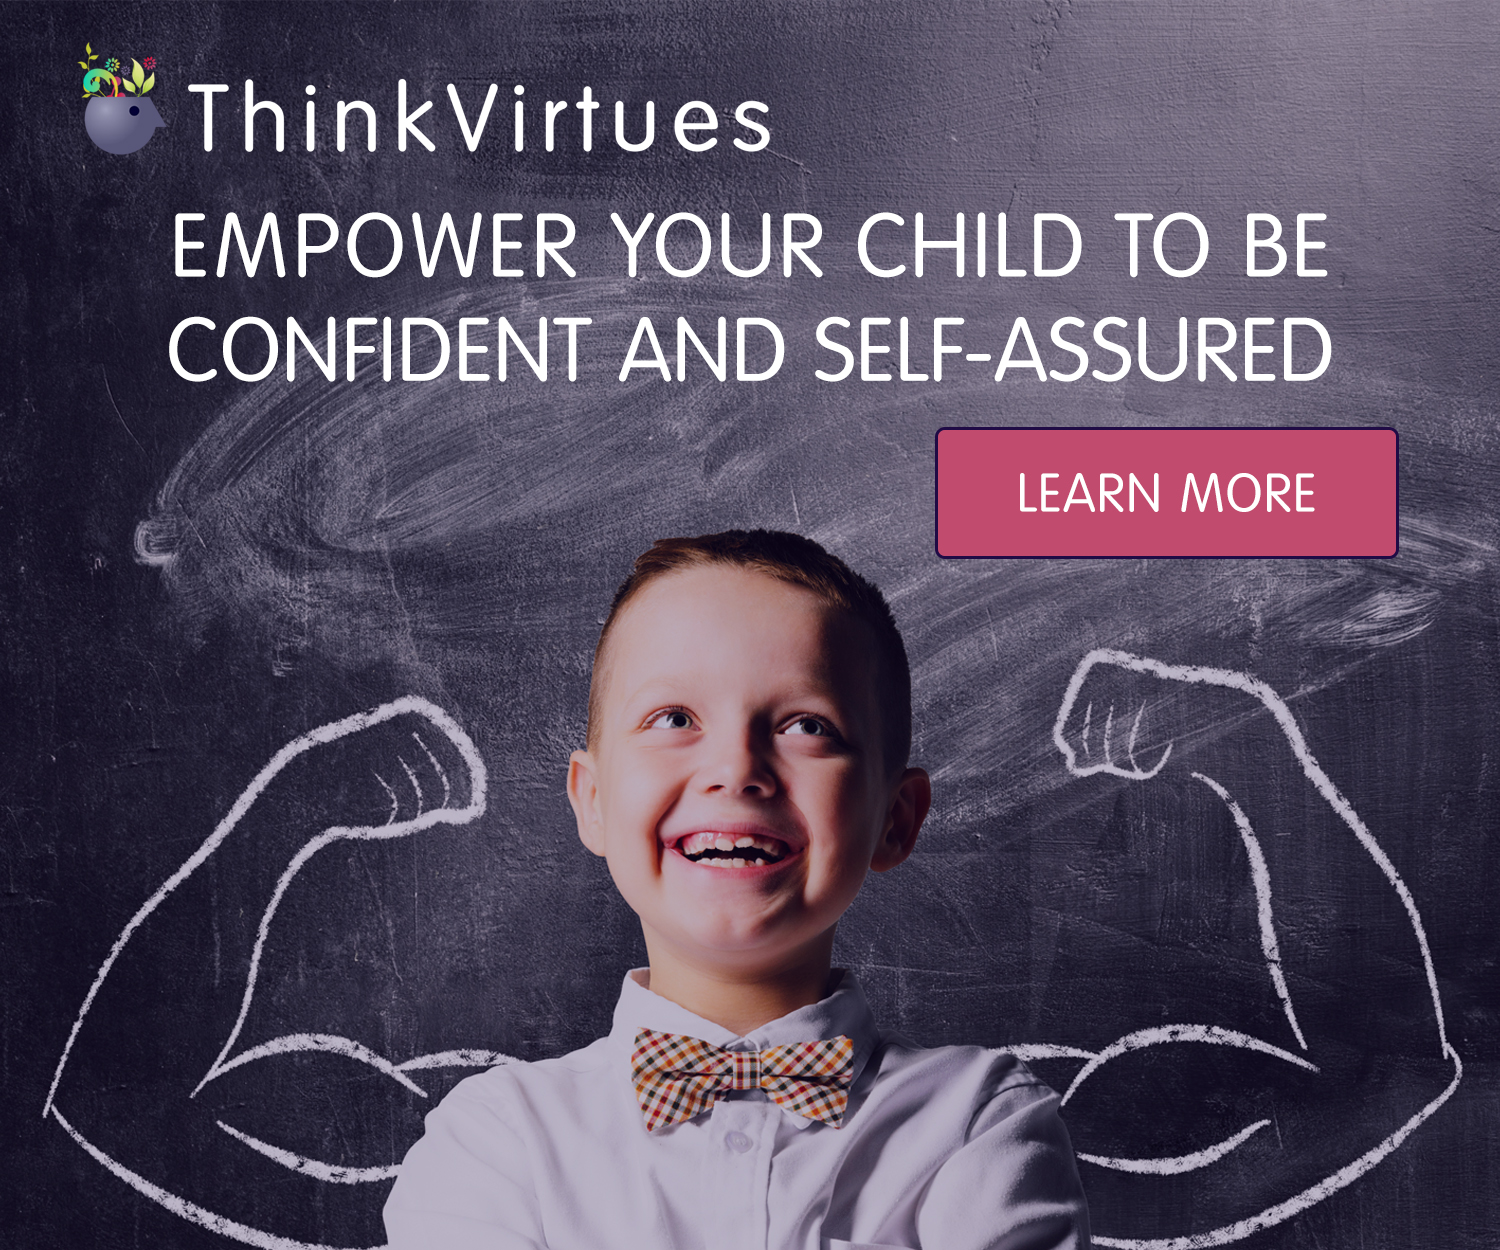 ThinkVirtues